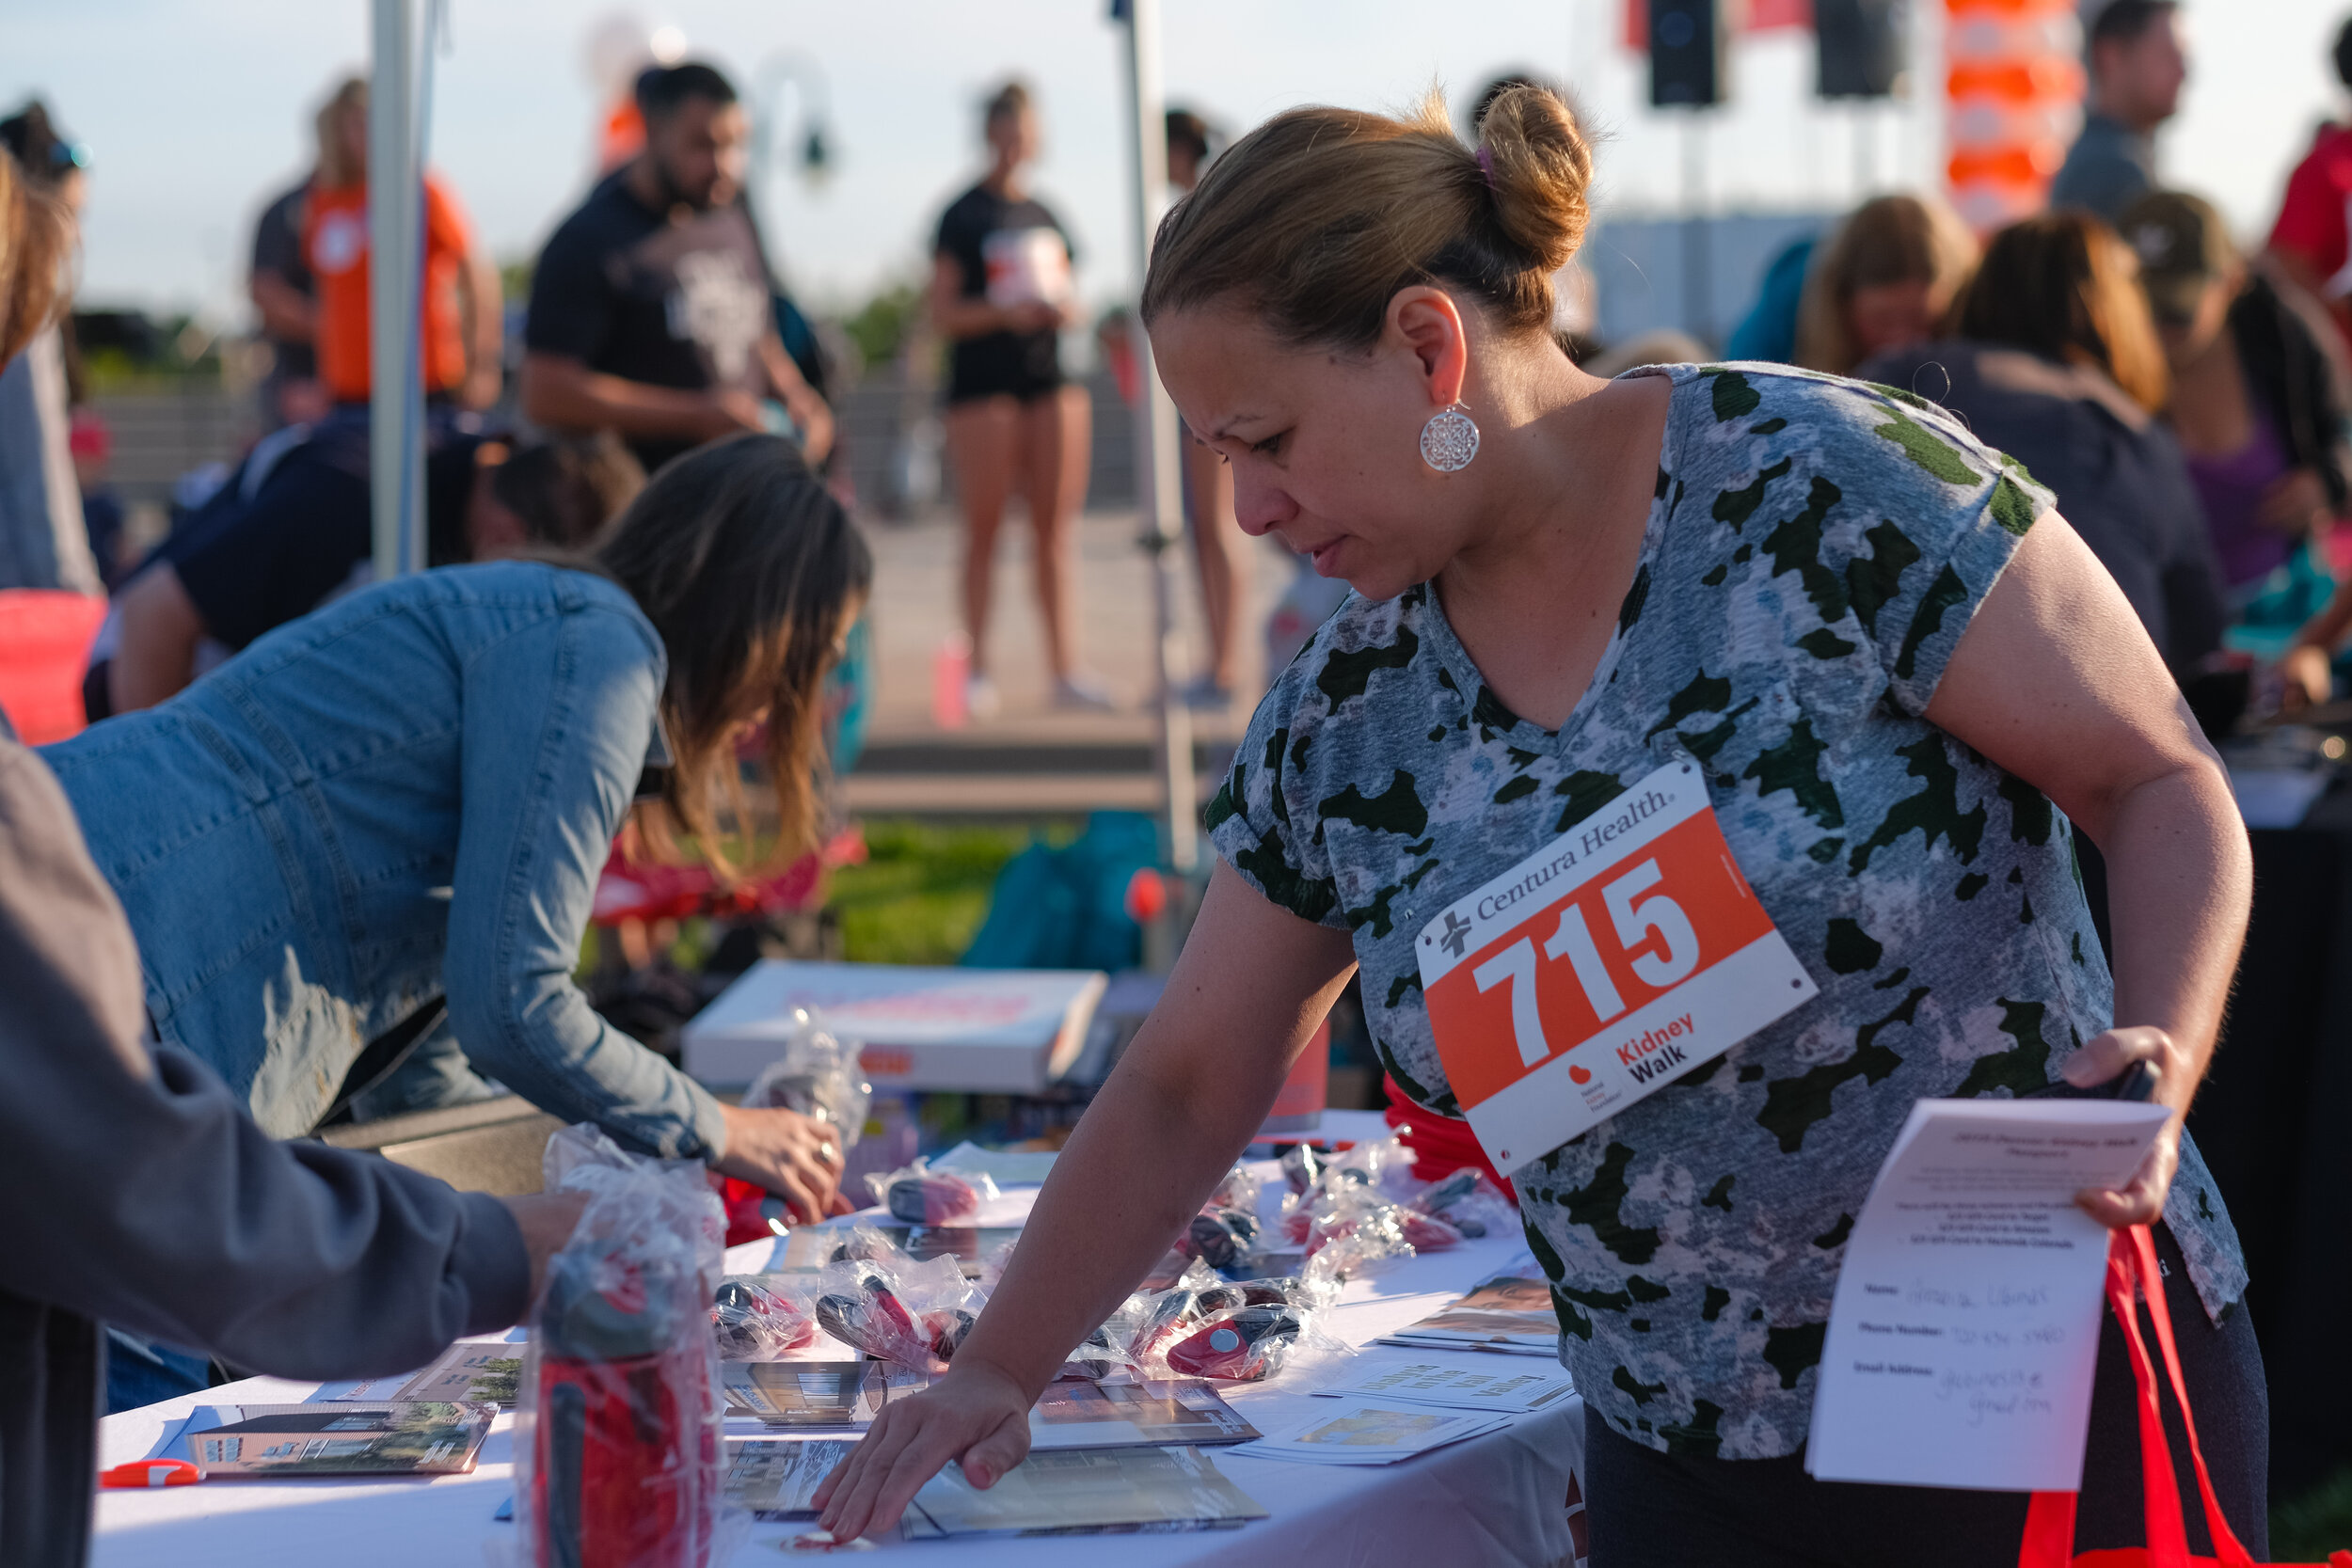 Denver Kidney Walk-22.jpg